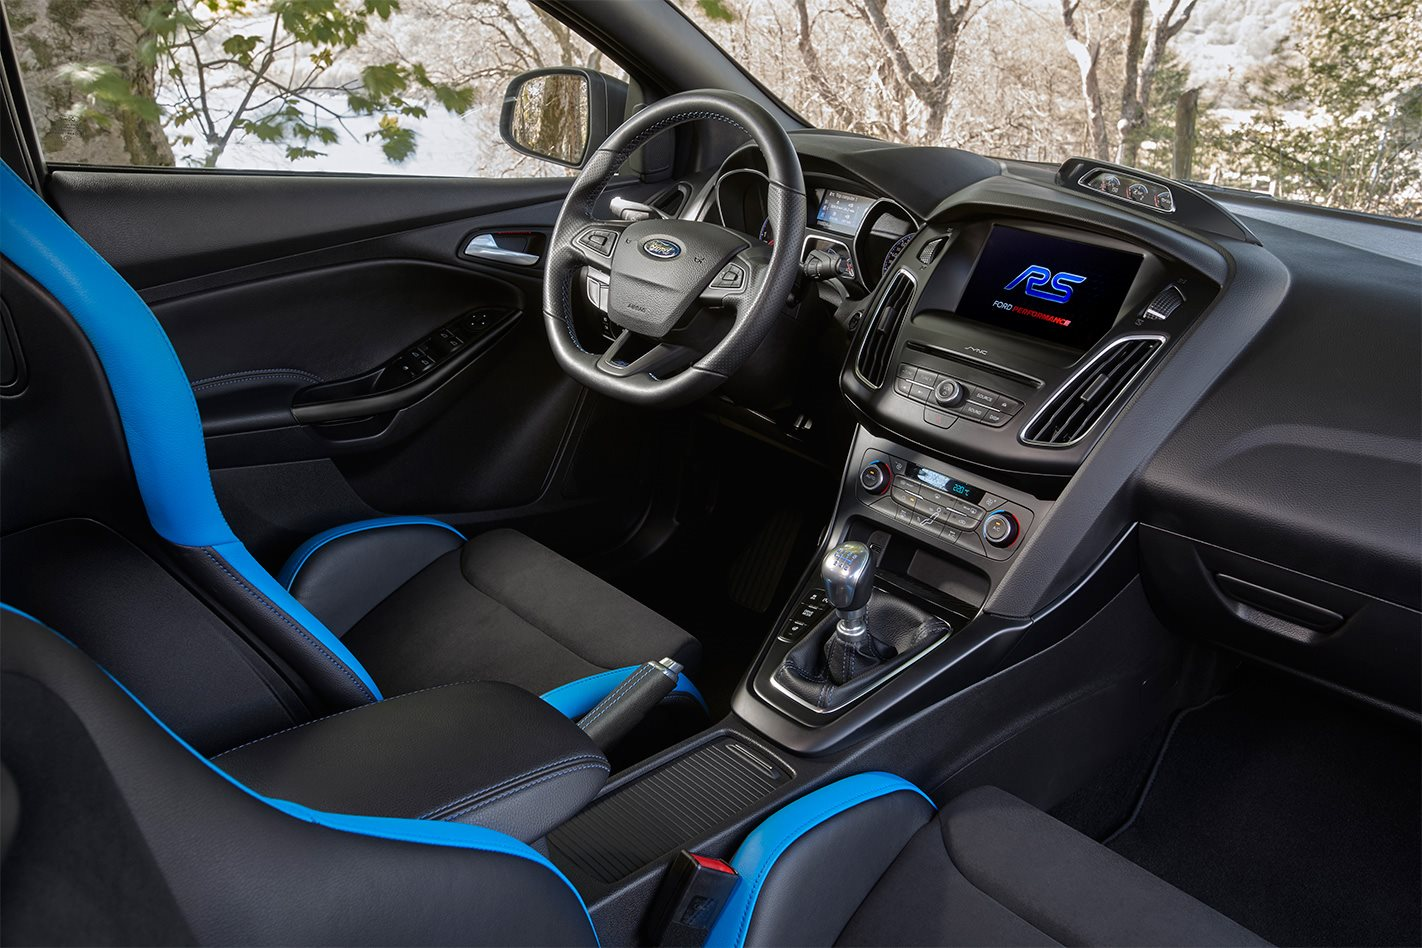 Ford Focus RS Option Pack interior